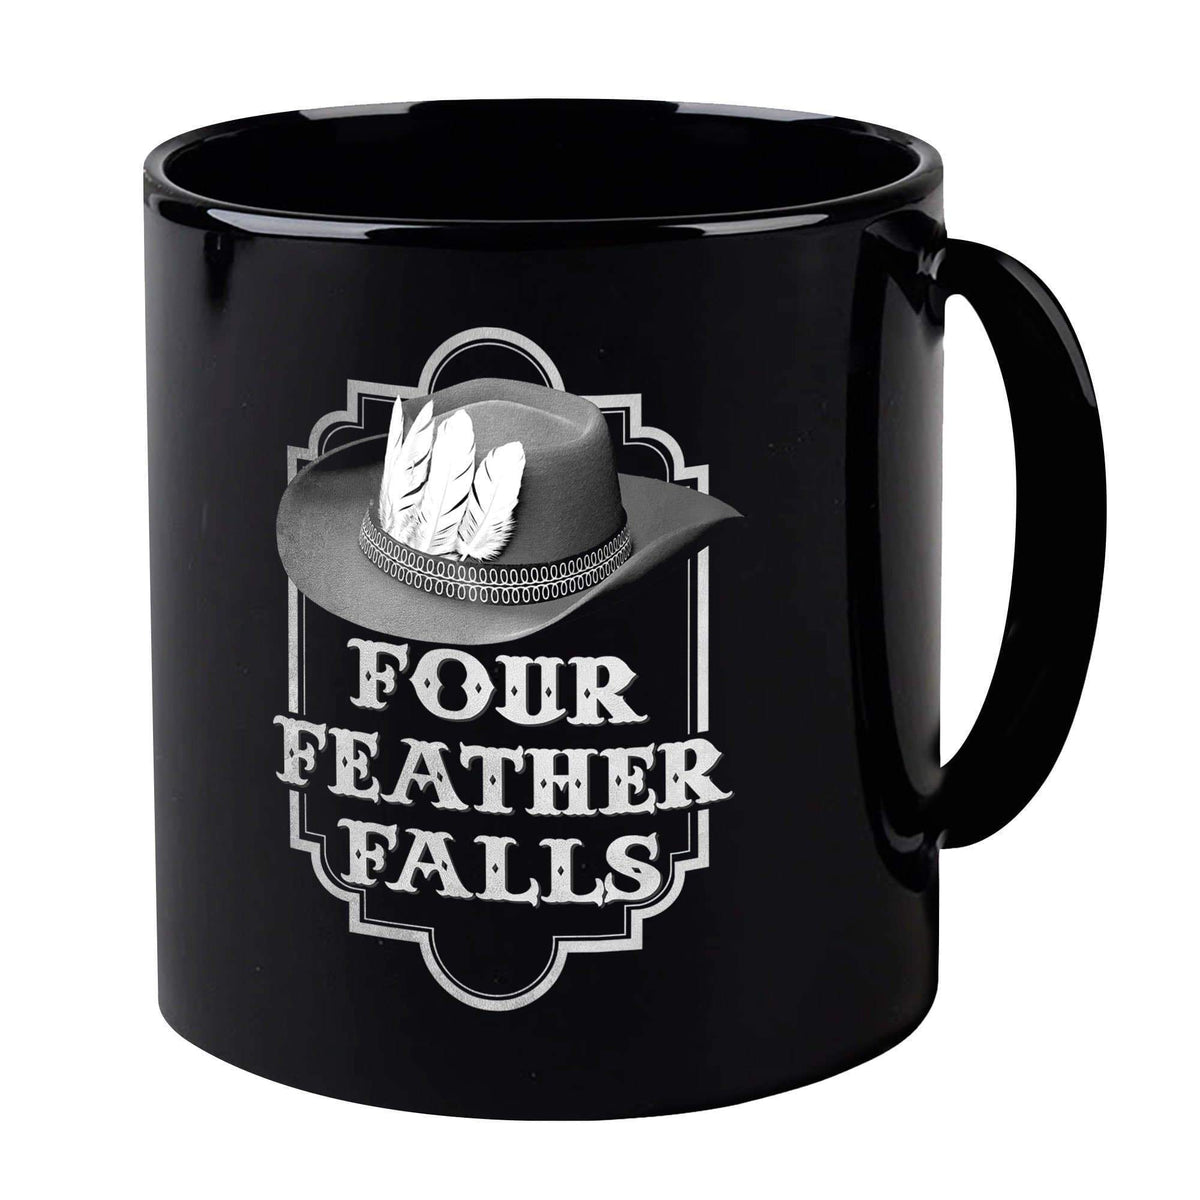 Four Feather Falls Mug [Official & Exclusive] - The Gerry Anderson Store